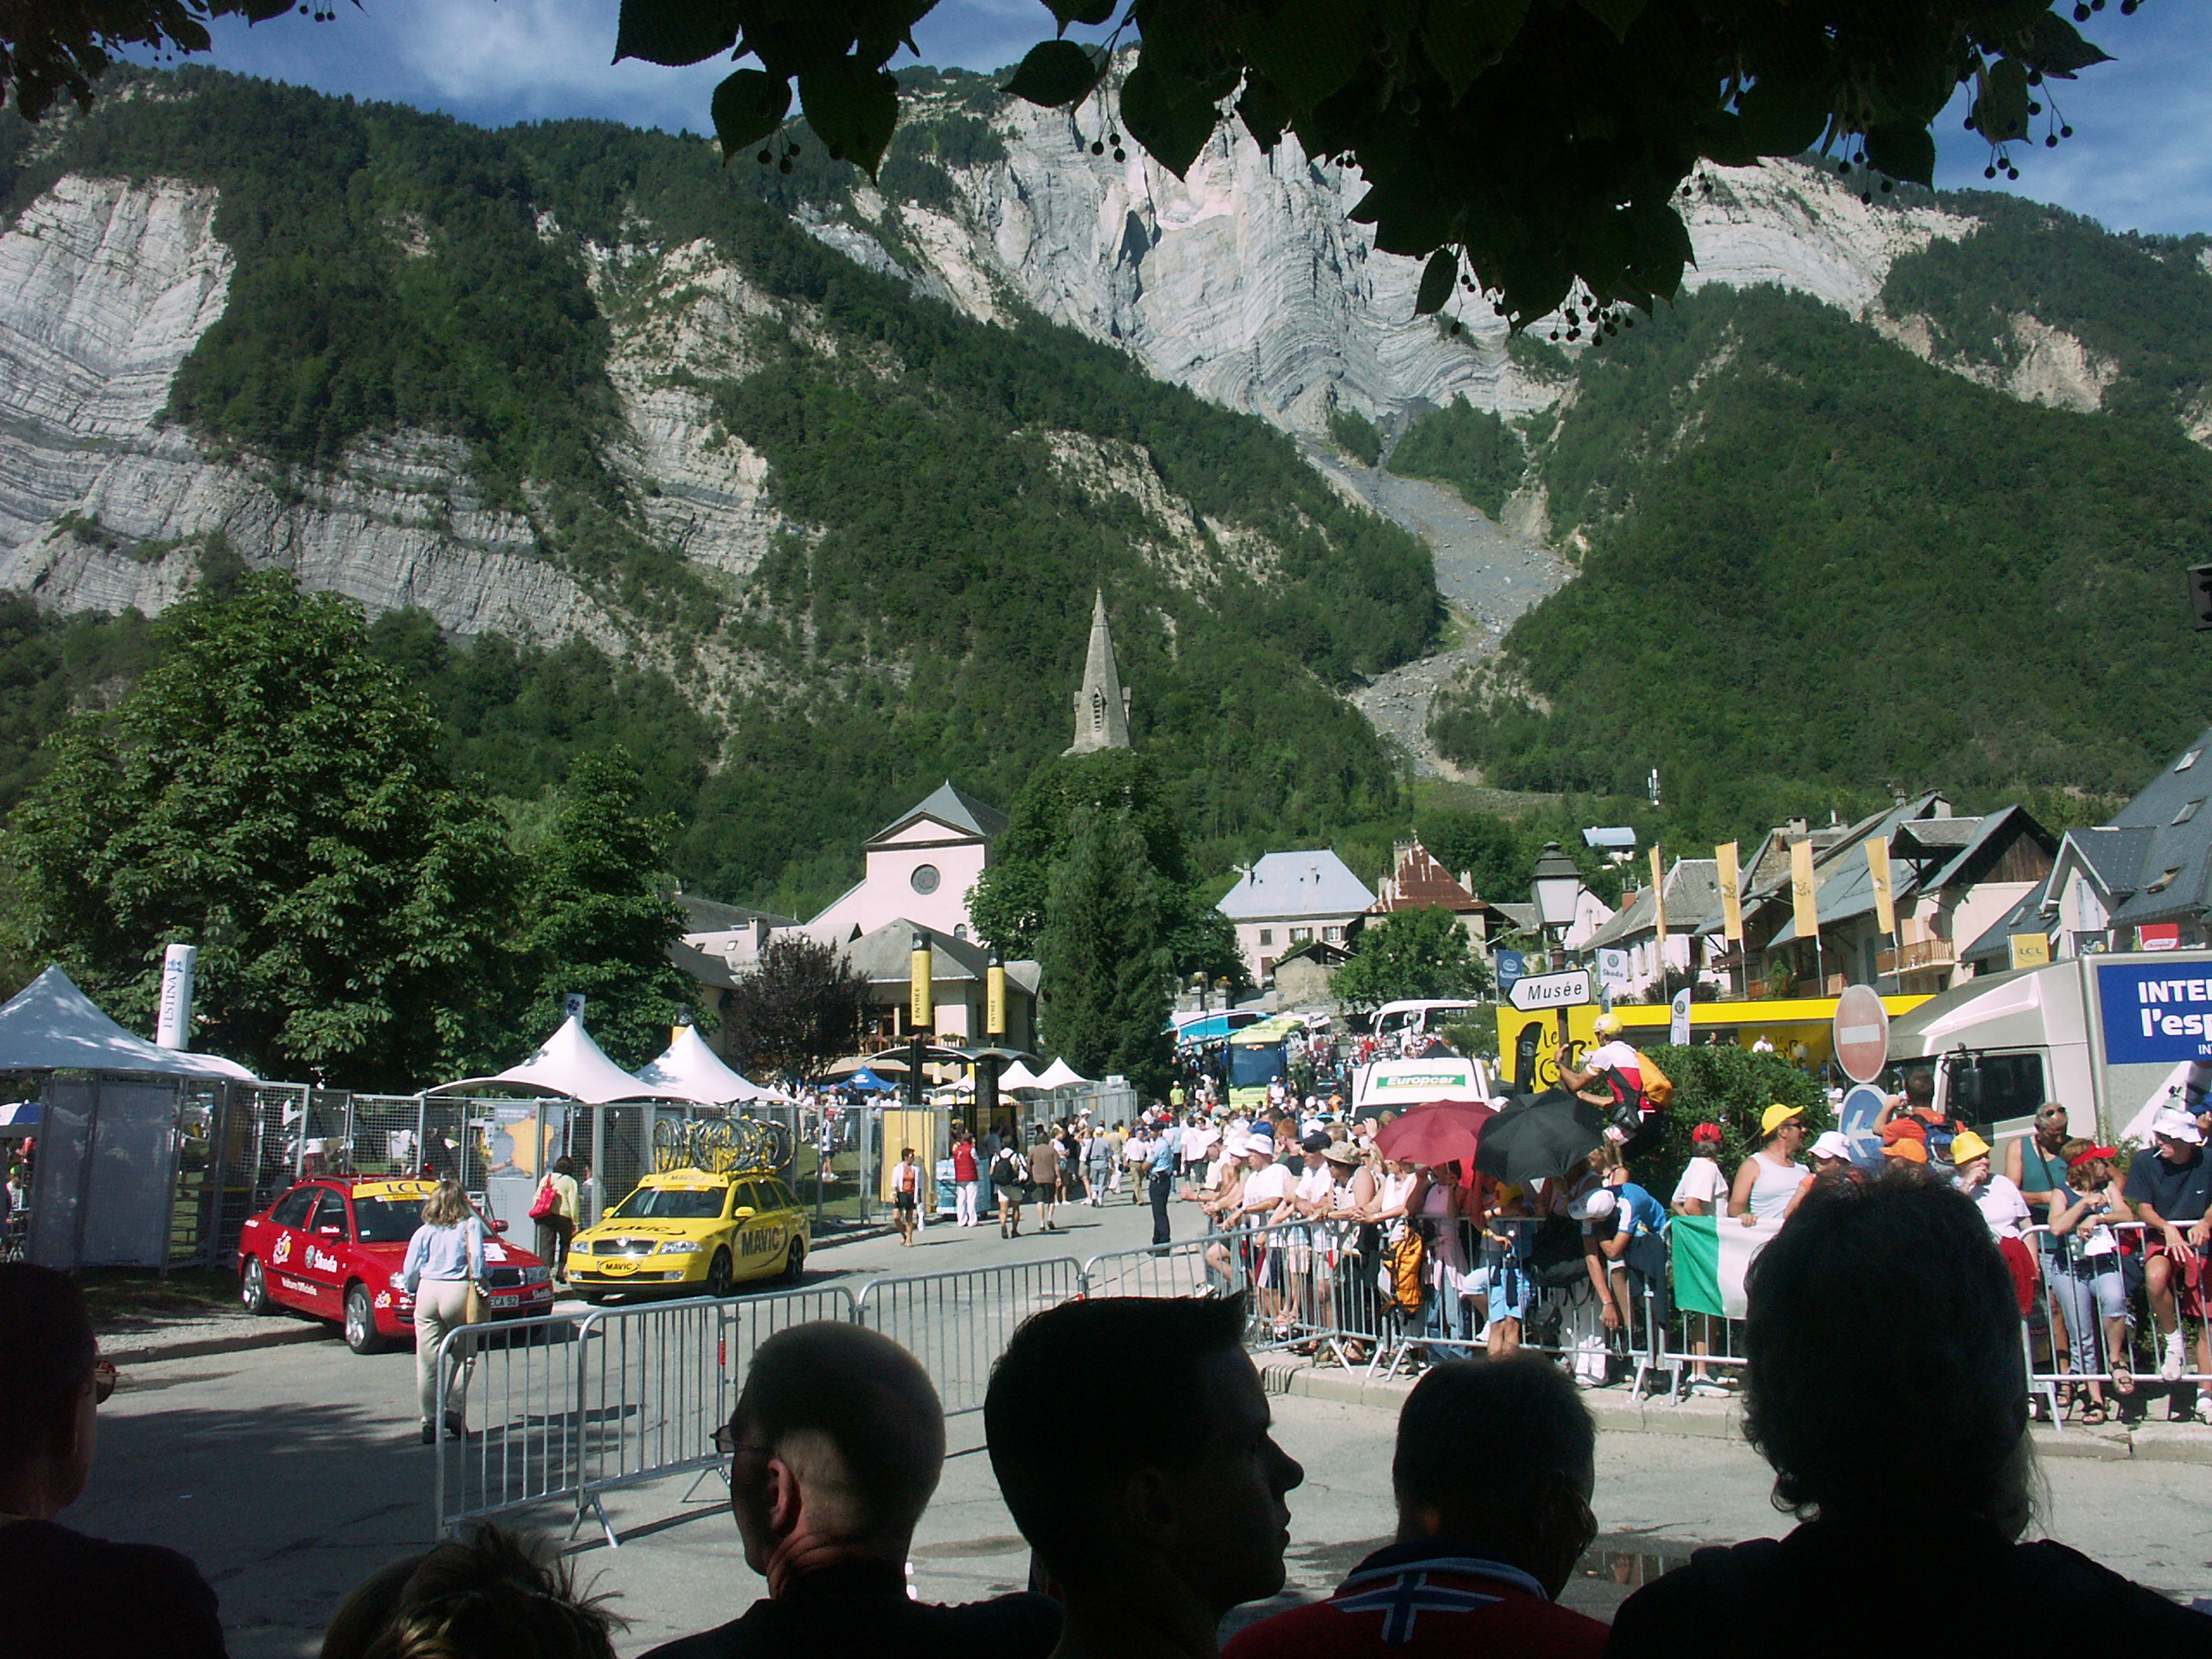 Bourg d'Oisans, a cyclists mecca at the foot of l'Alpe d'Huez